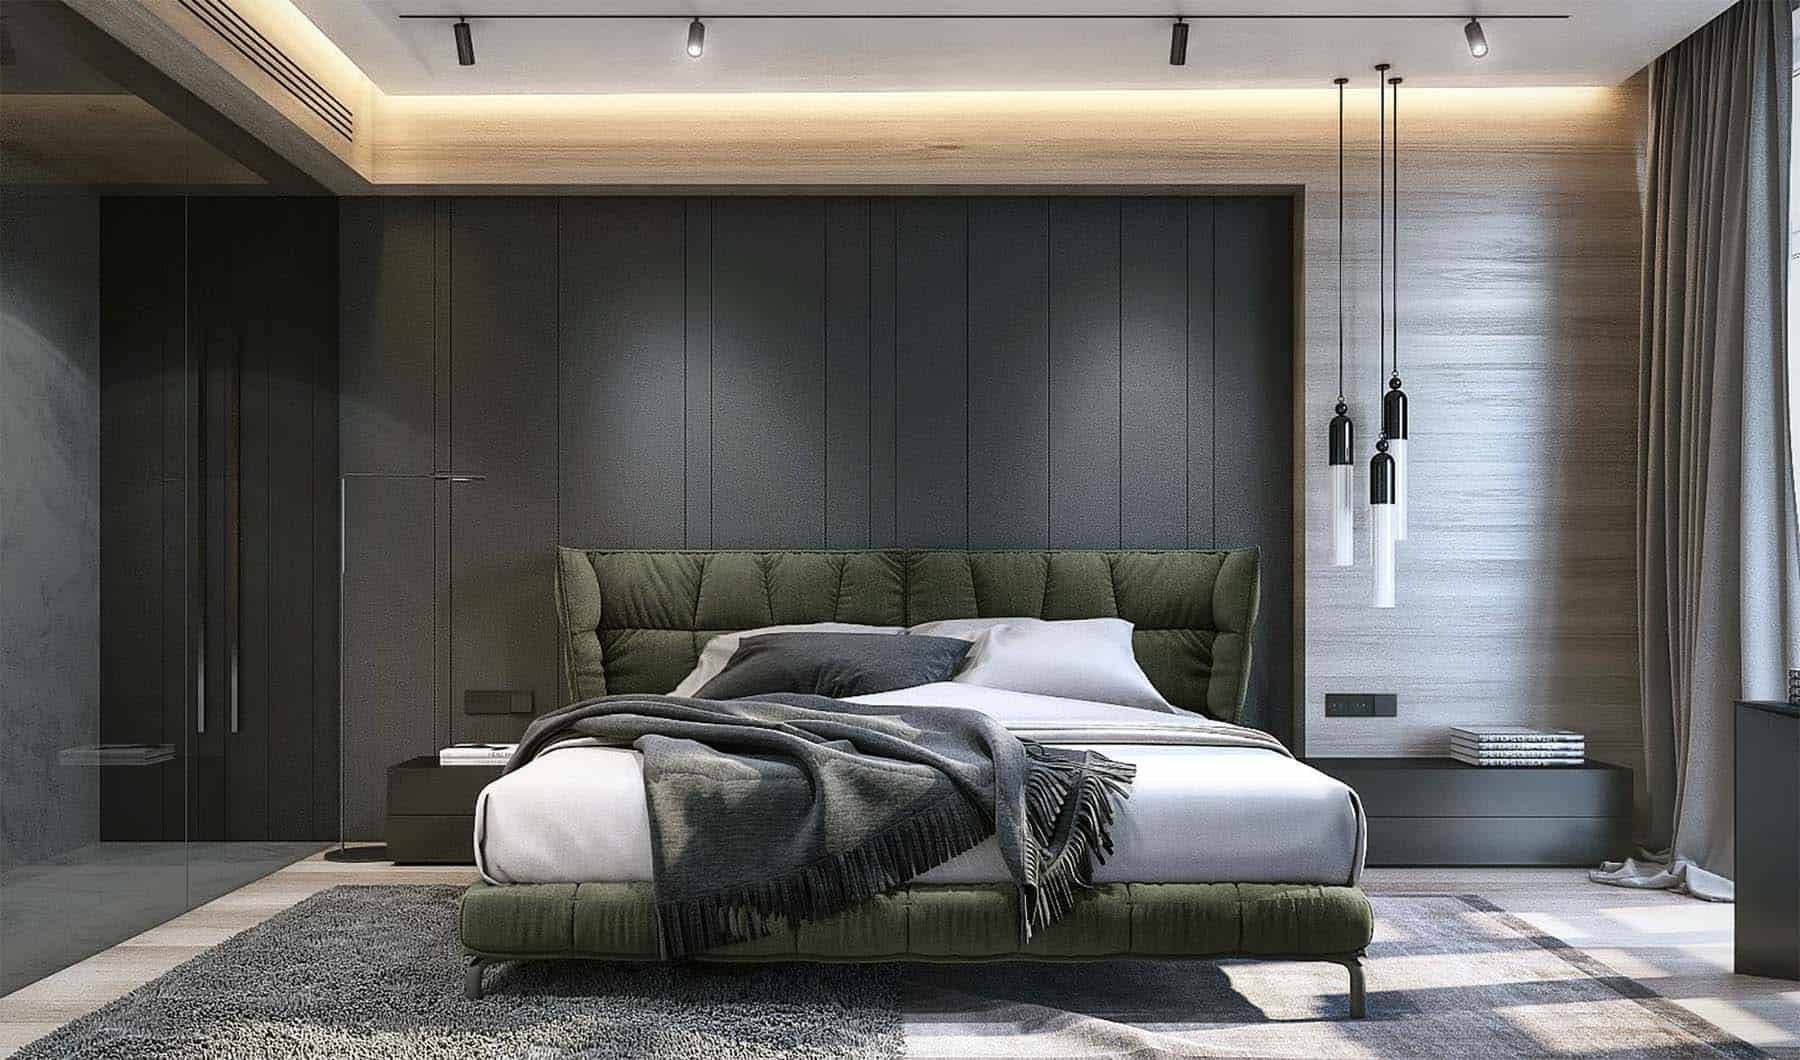 Modern Bedroom Ideas With A Warm Aesthetic